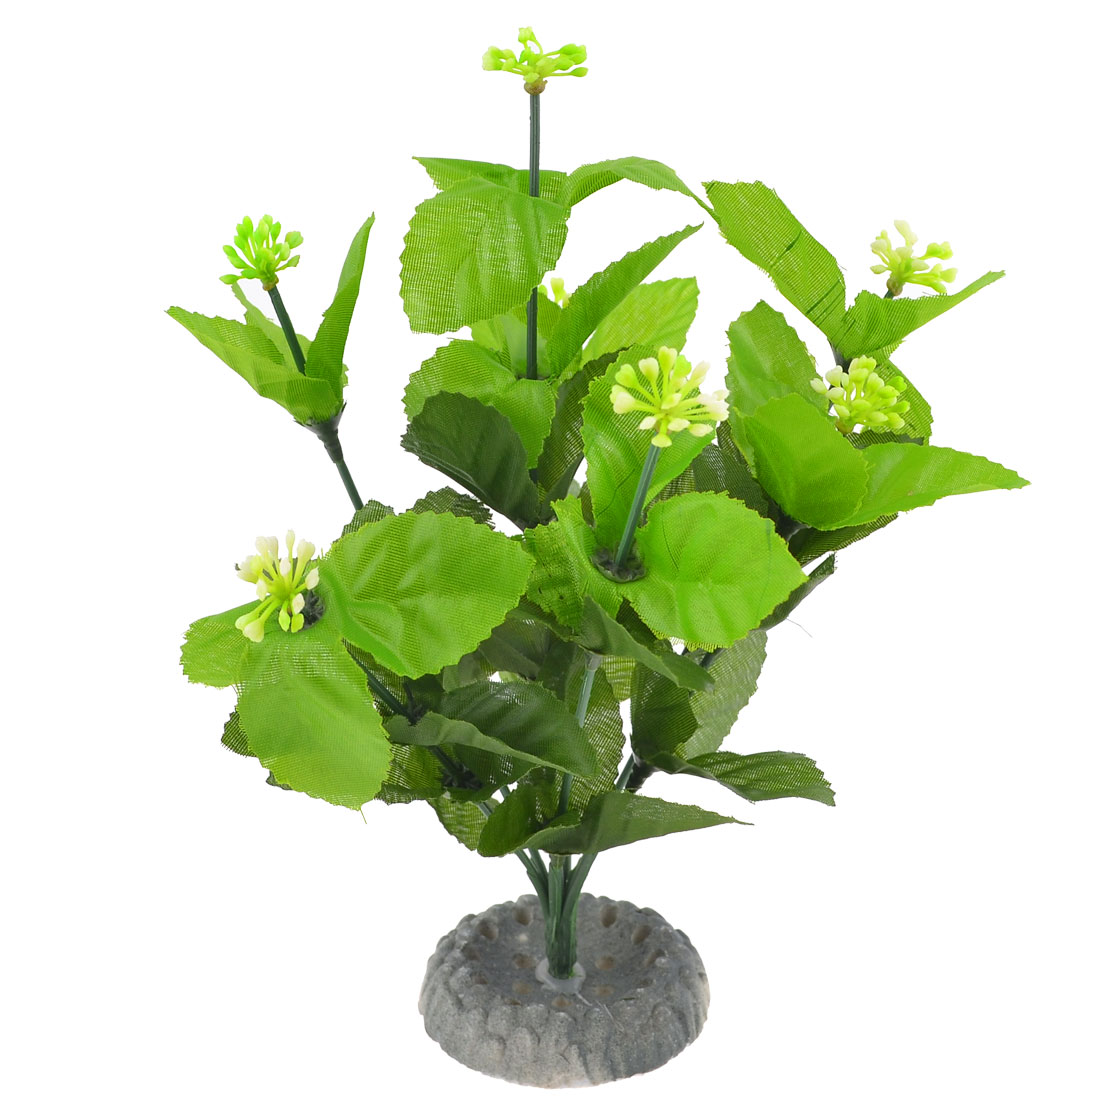 "Ceramic Base Green White Plastic Plant for Fish Tank 8.9"" High"